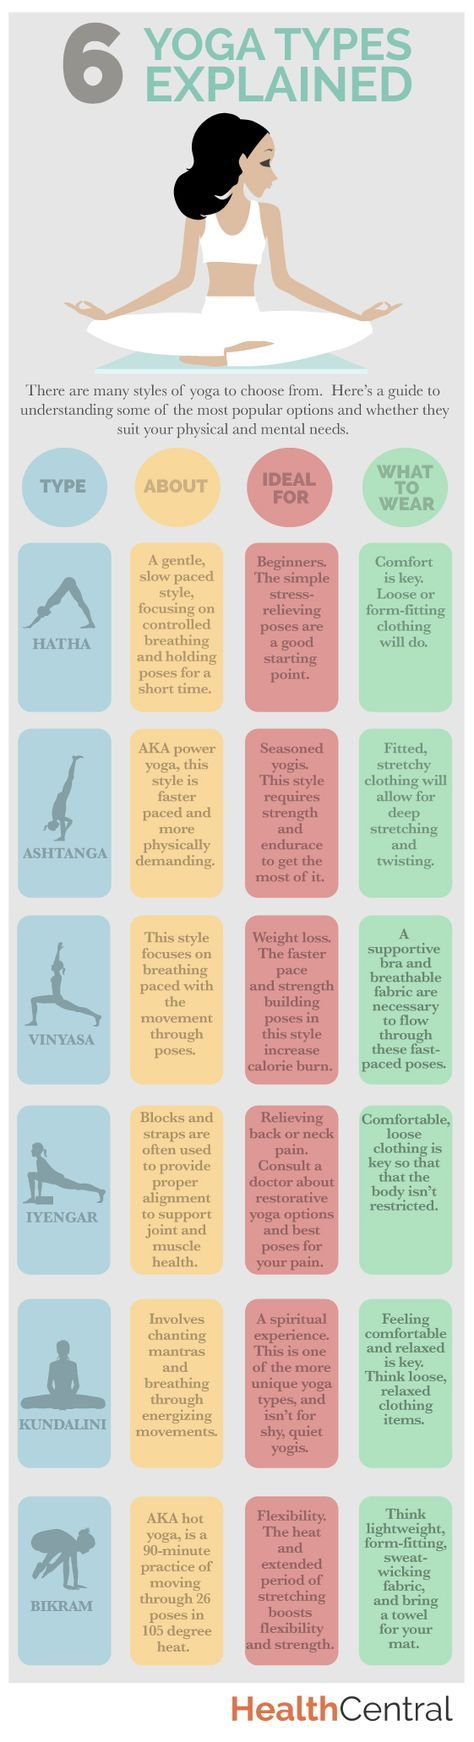 6 Yoga Types Explained (INFOGRAPHIC)